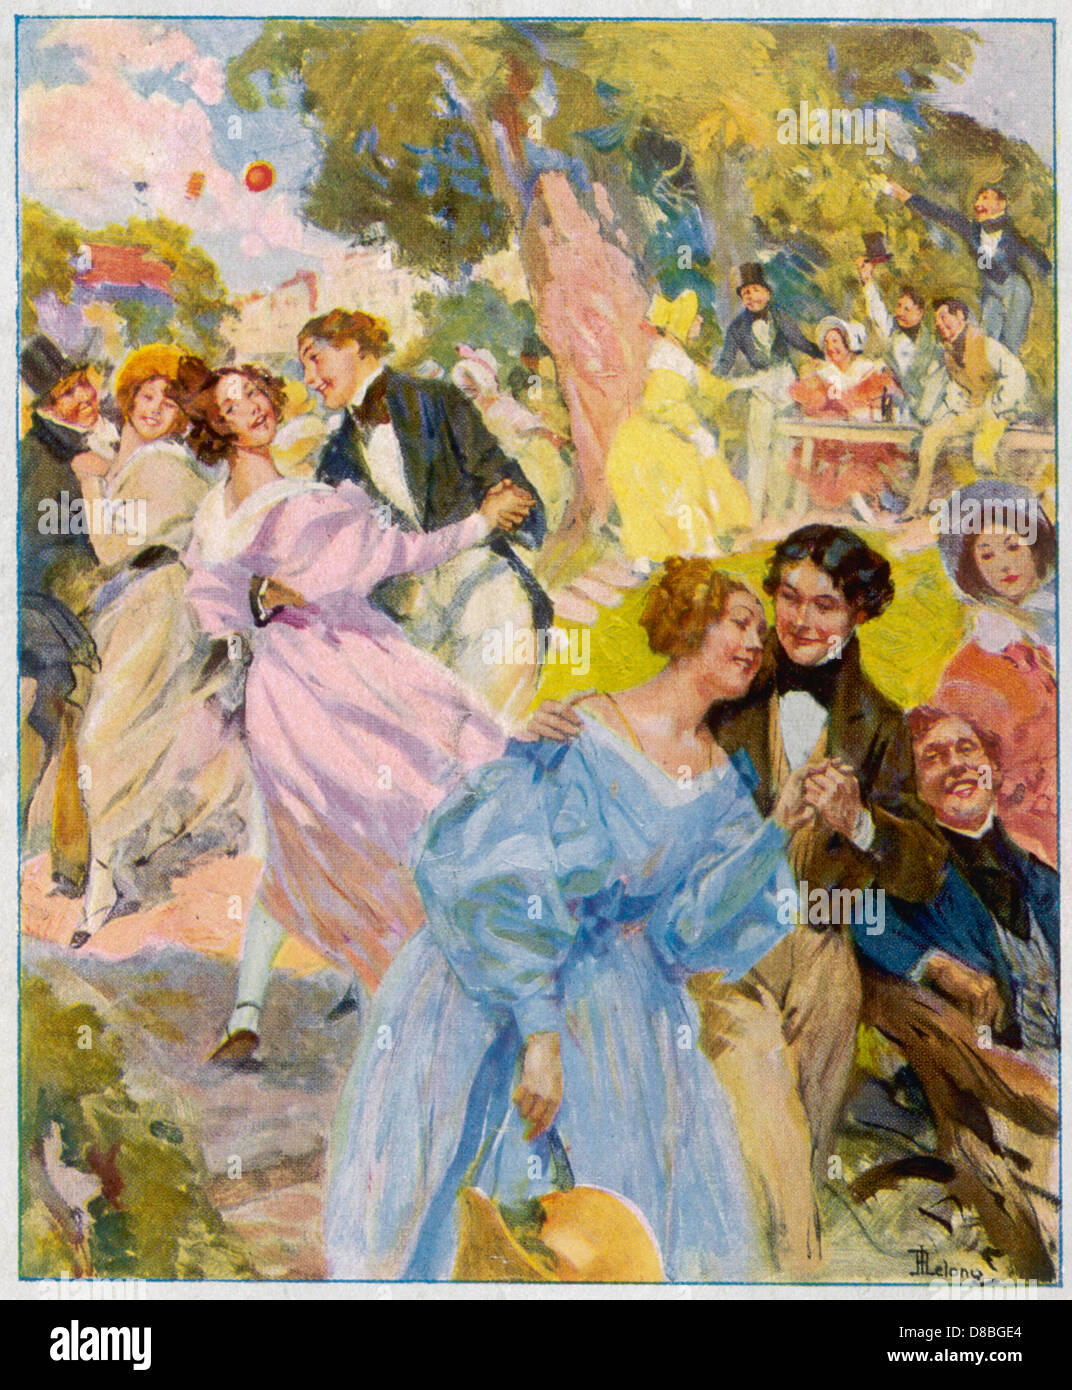 Dance 1830 France - Stock Image